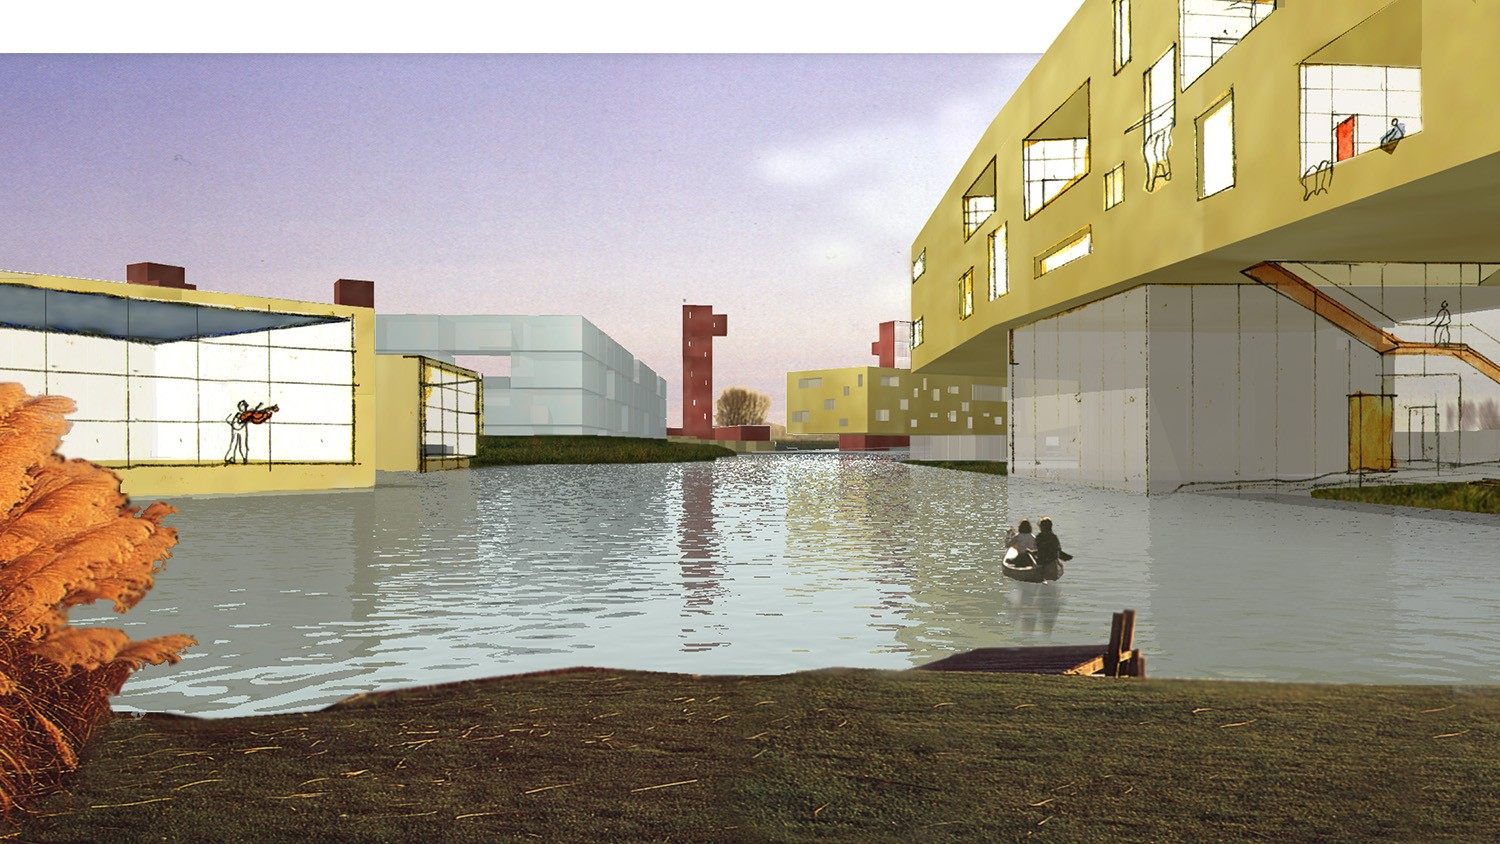 https://s3.us-east-2.amazonaws.com/steven-holl/uploads/projects/project-images/StevenhollArchitects_Toolenburg_upthelake_WH.jpg